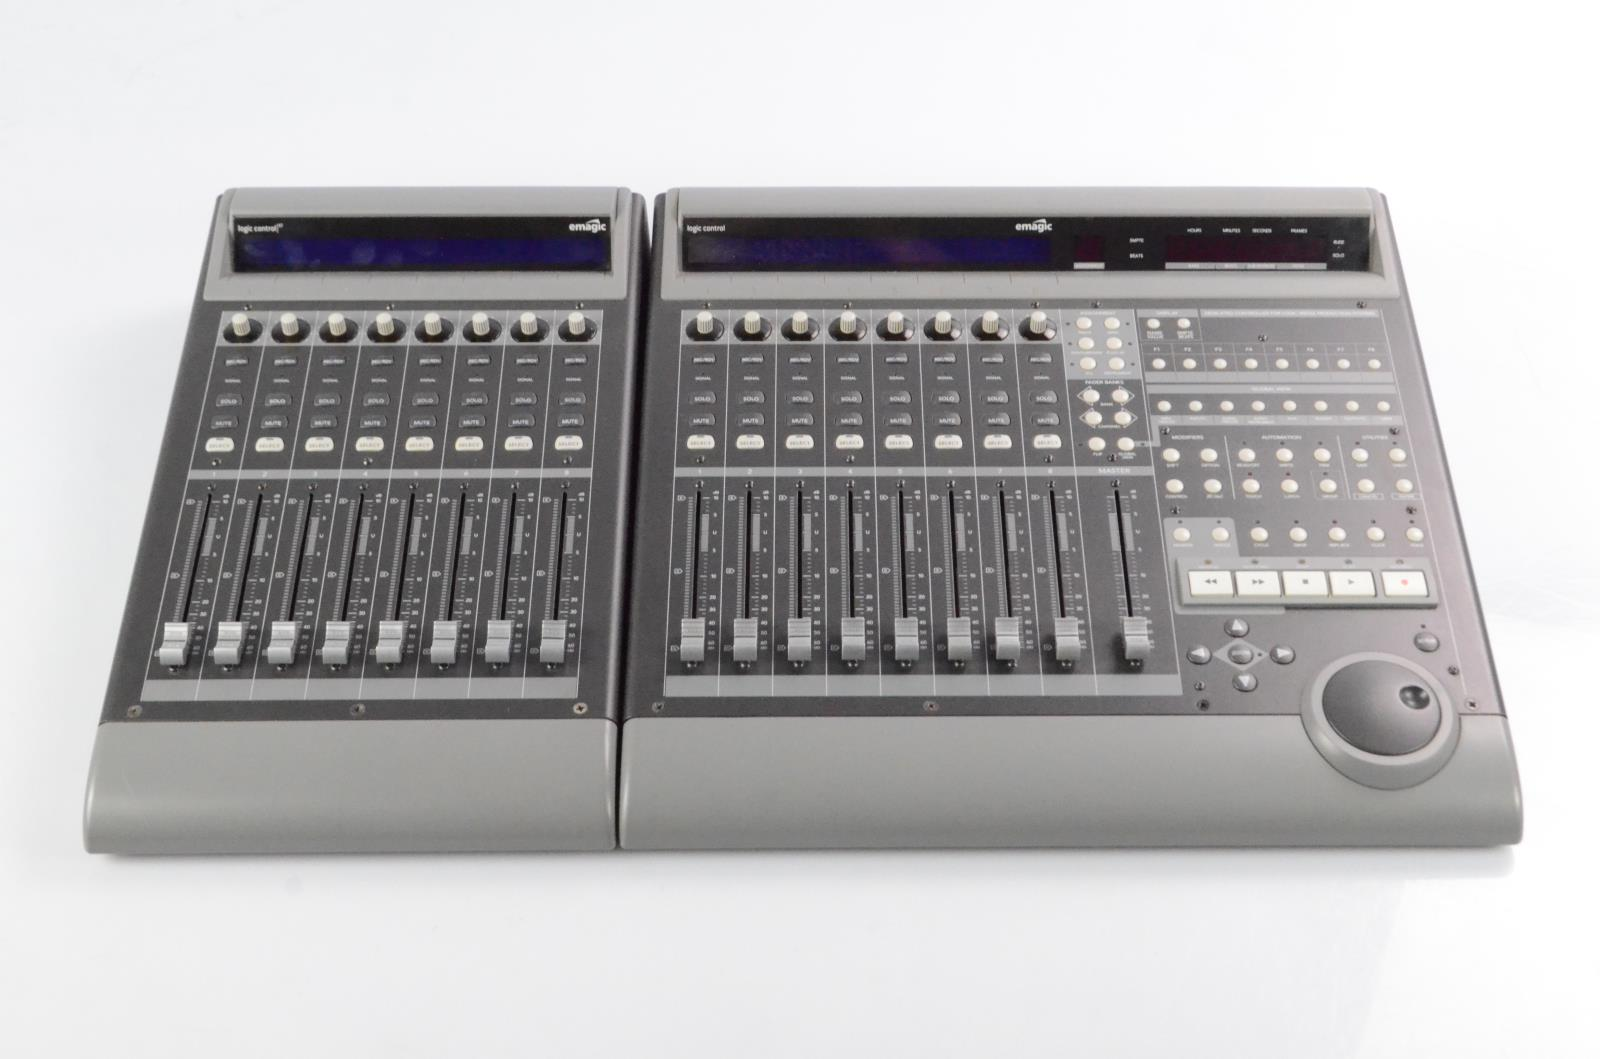 Mackie Logic Control Surface & XT Fader Expansion Owned by Reinhold Mack #33848